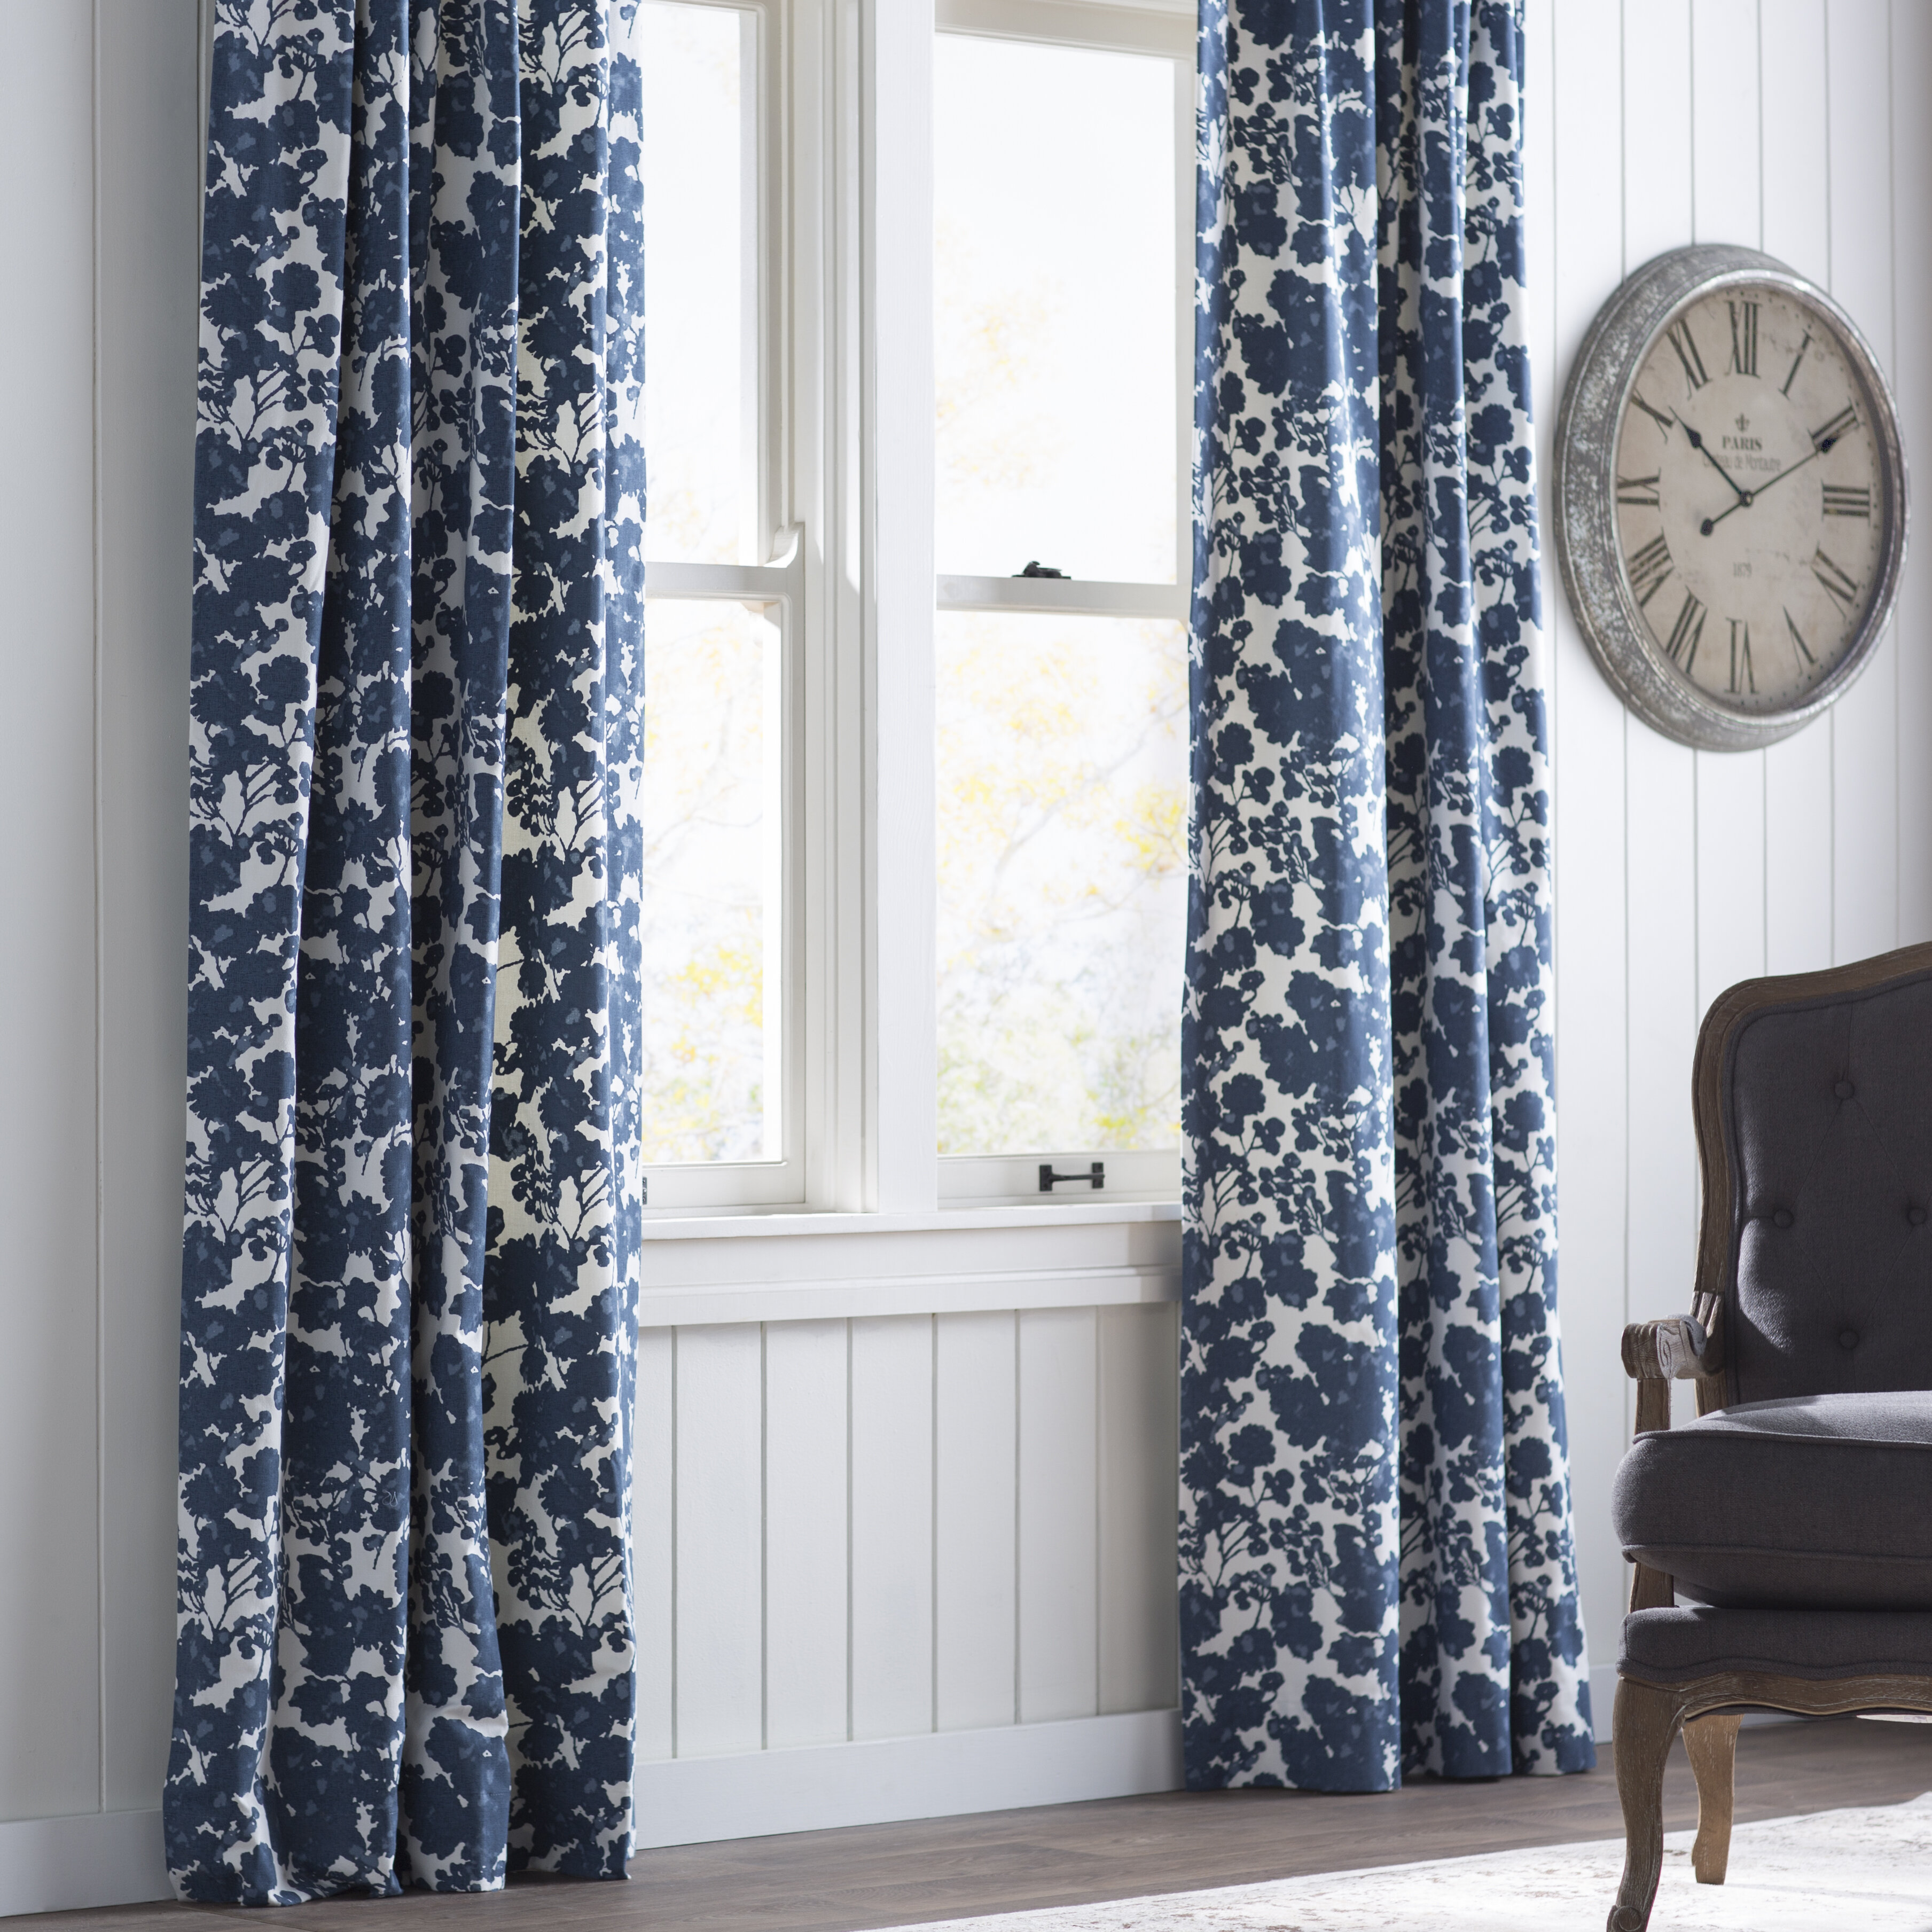 check curtains co mcgee shower chambray kateosbornephotography curtain products